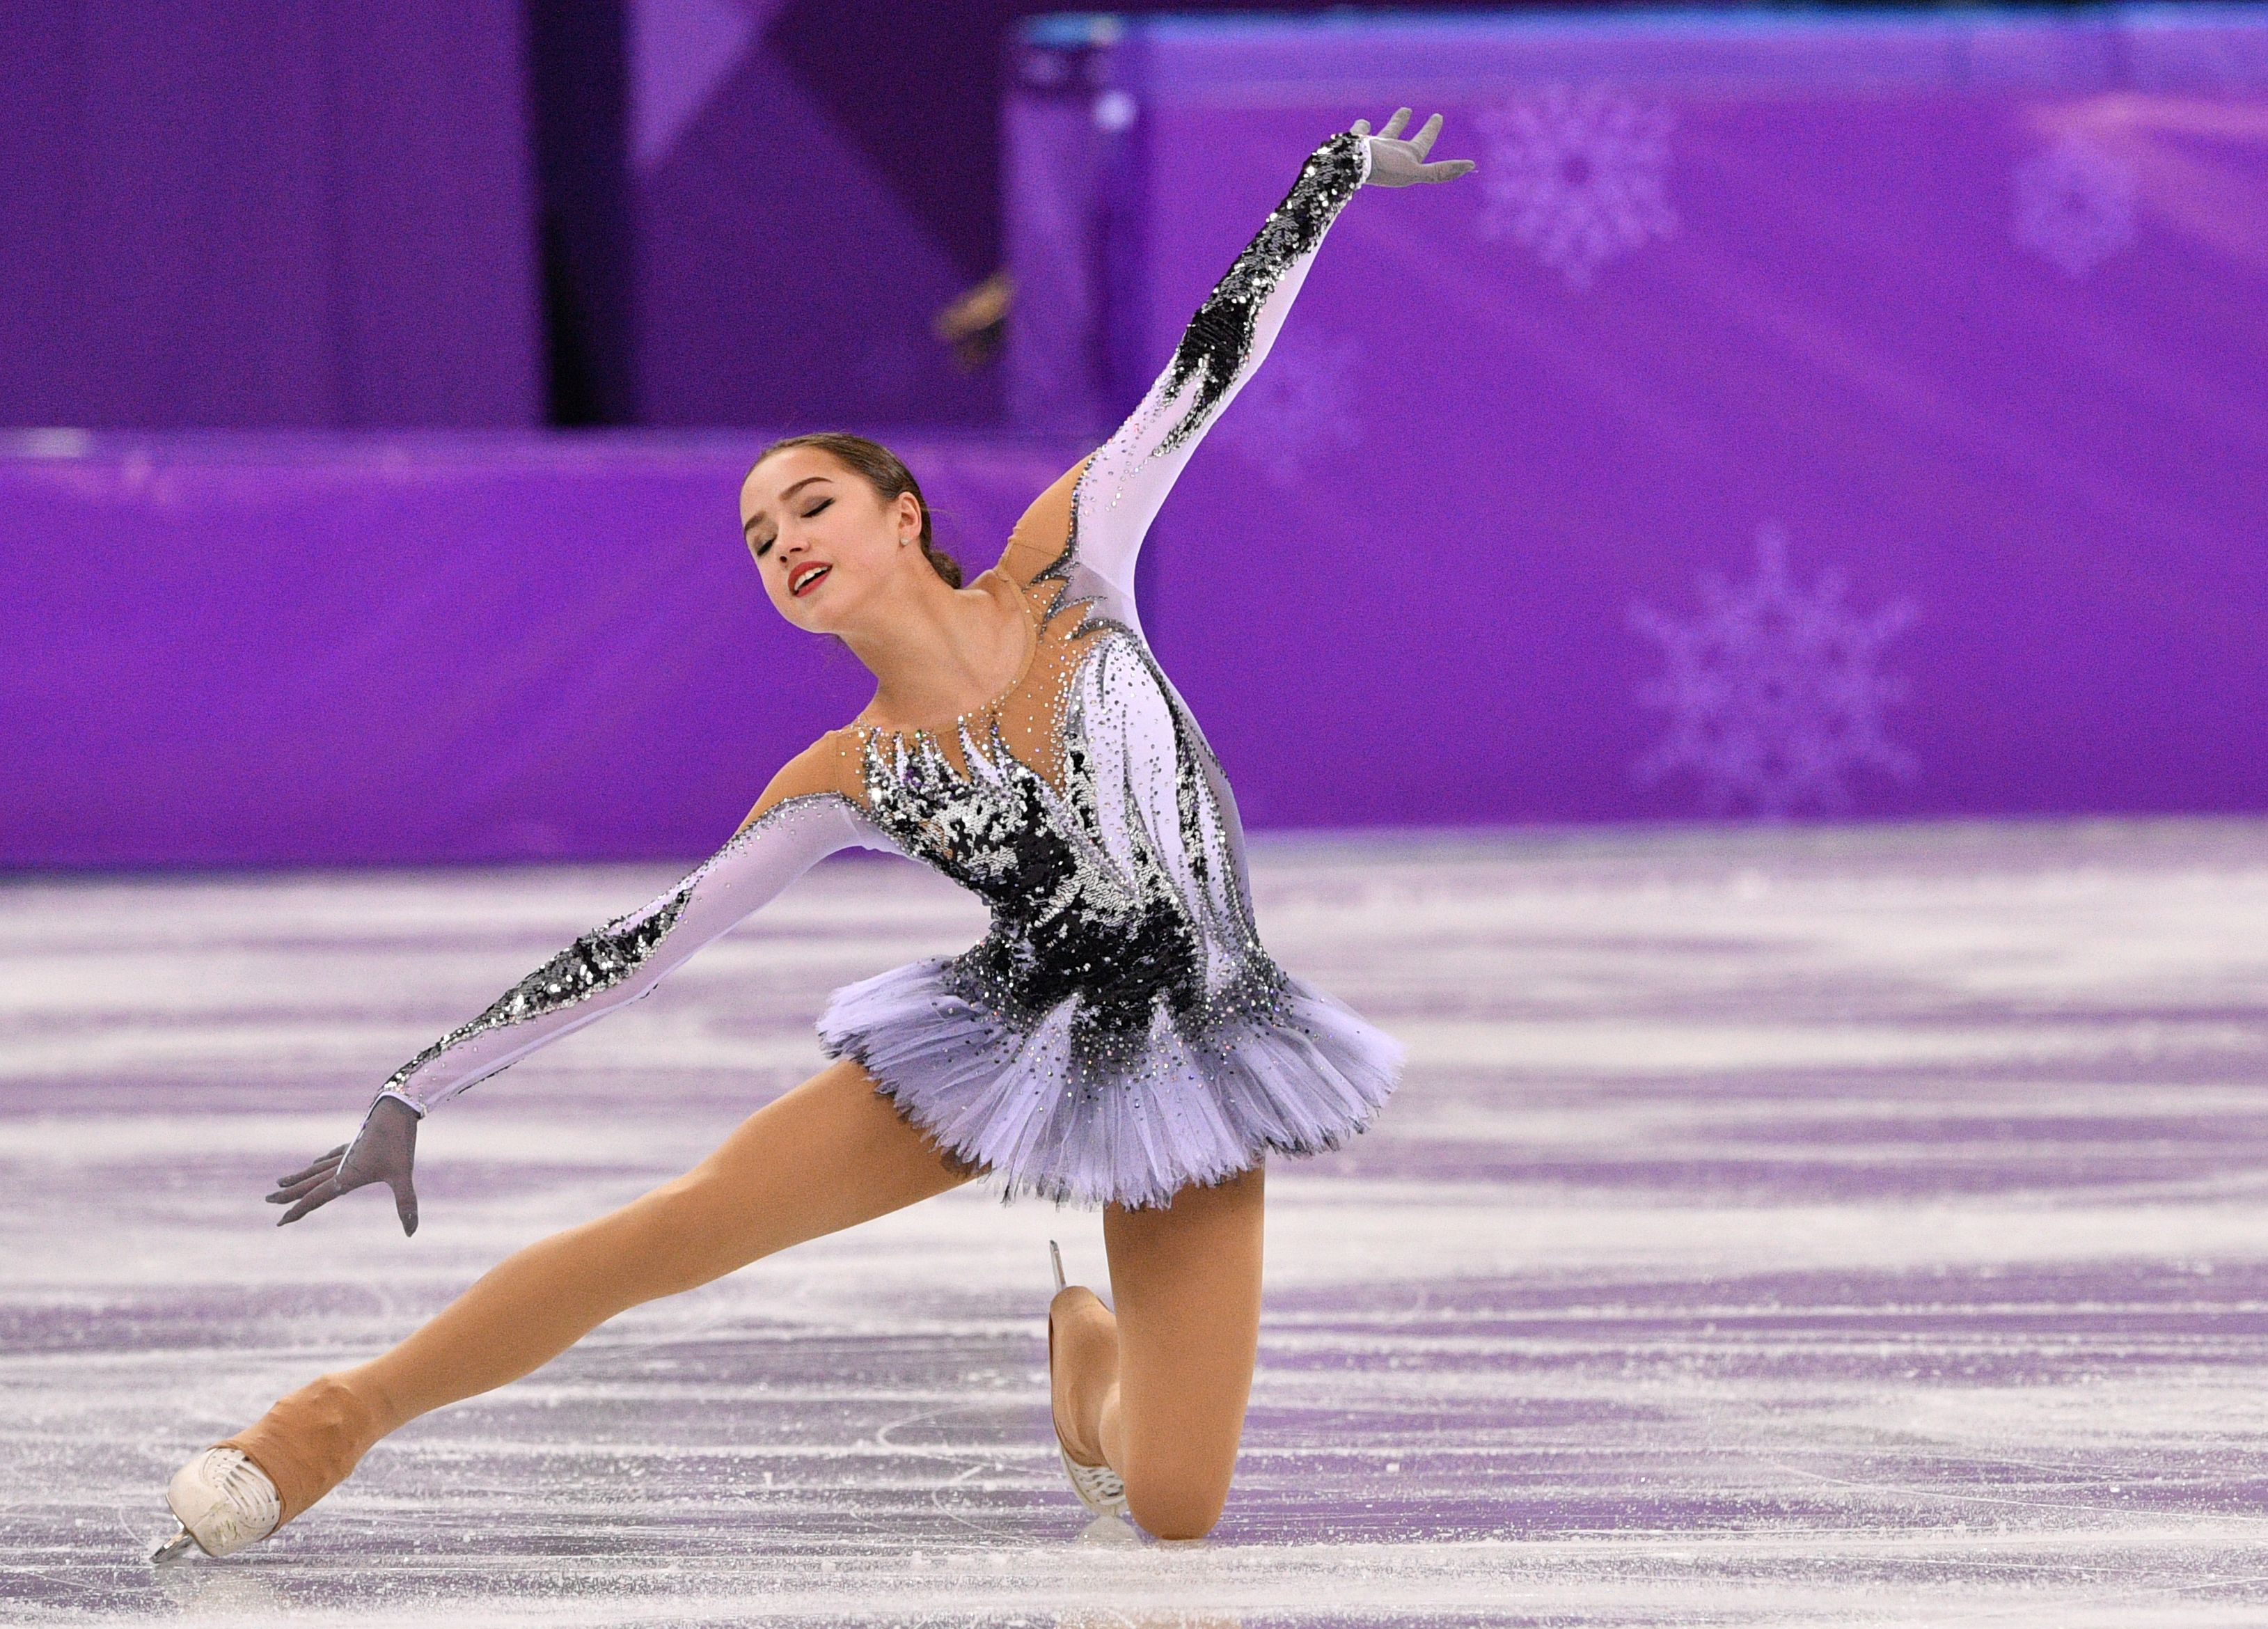 Russia's Alina Zagitova competes in the women's single skating short program of the figure skating event during the Pyeongchang 2018 Winter Olympic Games at the Gangneung Ice Arena in Gangneung on February 21, 2018